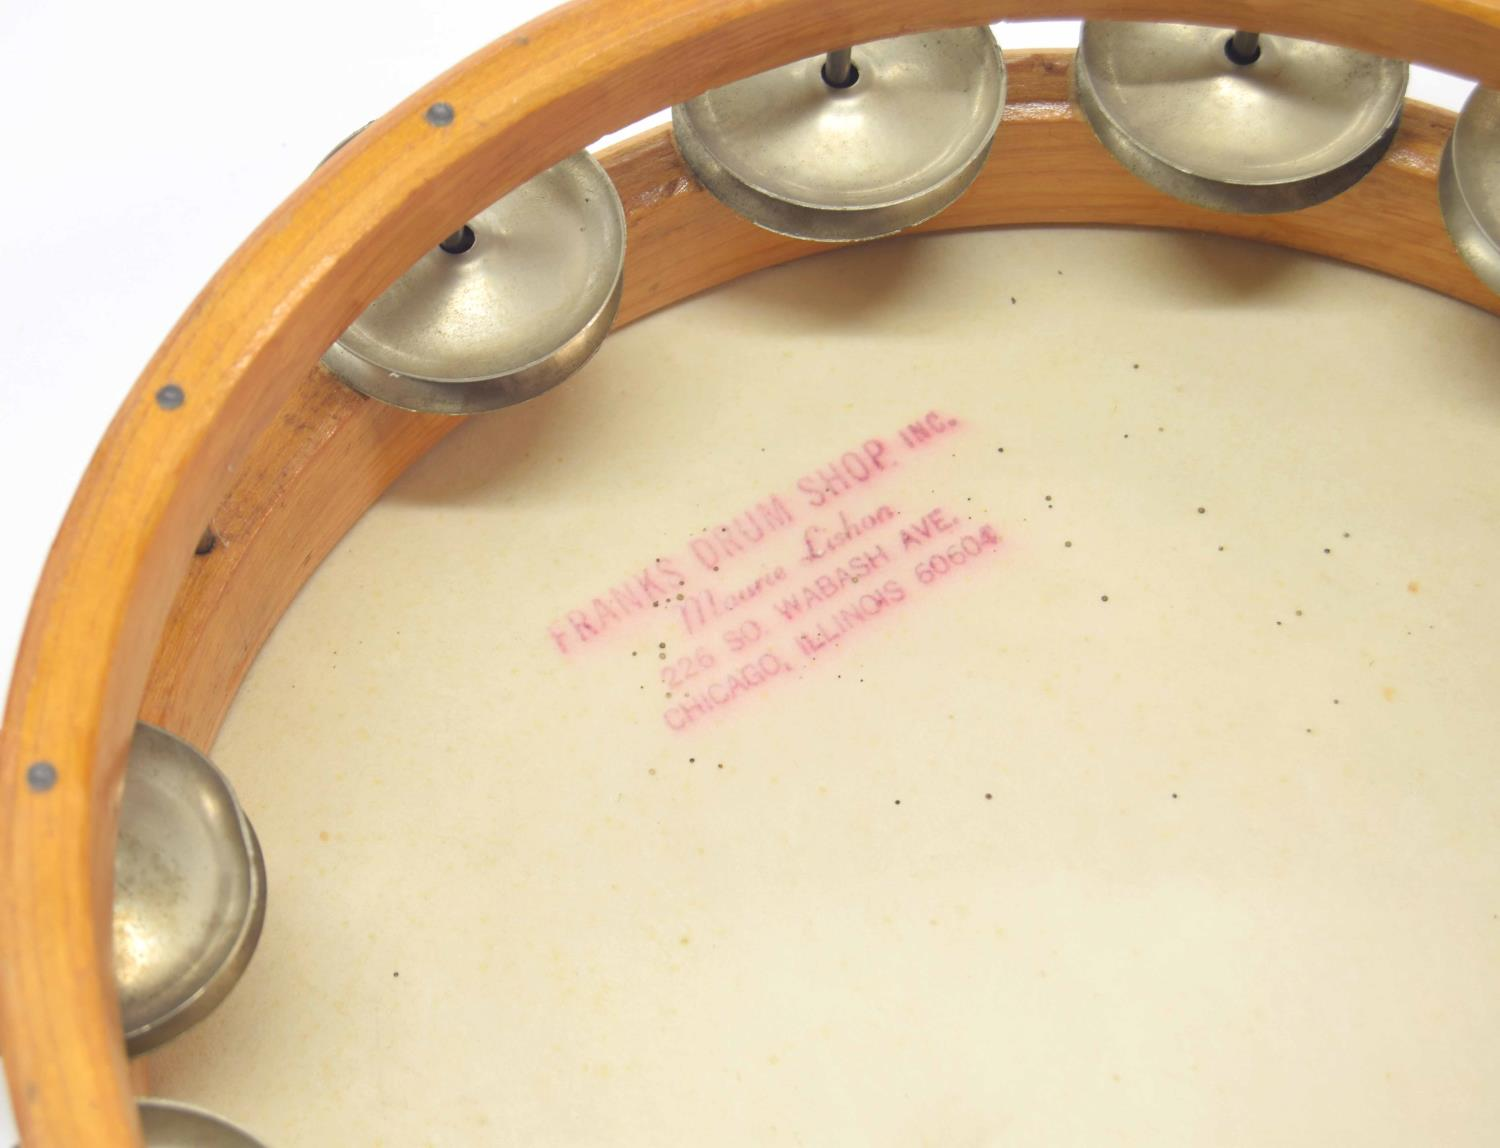 """Paul Chalklin - 10"""" tambourine branded on the skin 'Franks Drum Shop Inc, Chicago Illinois' - Image 2 of 2"""